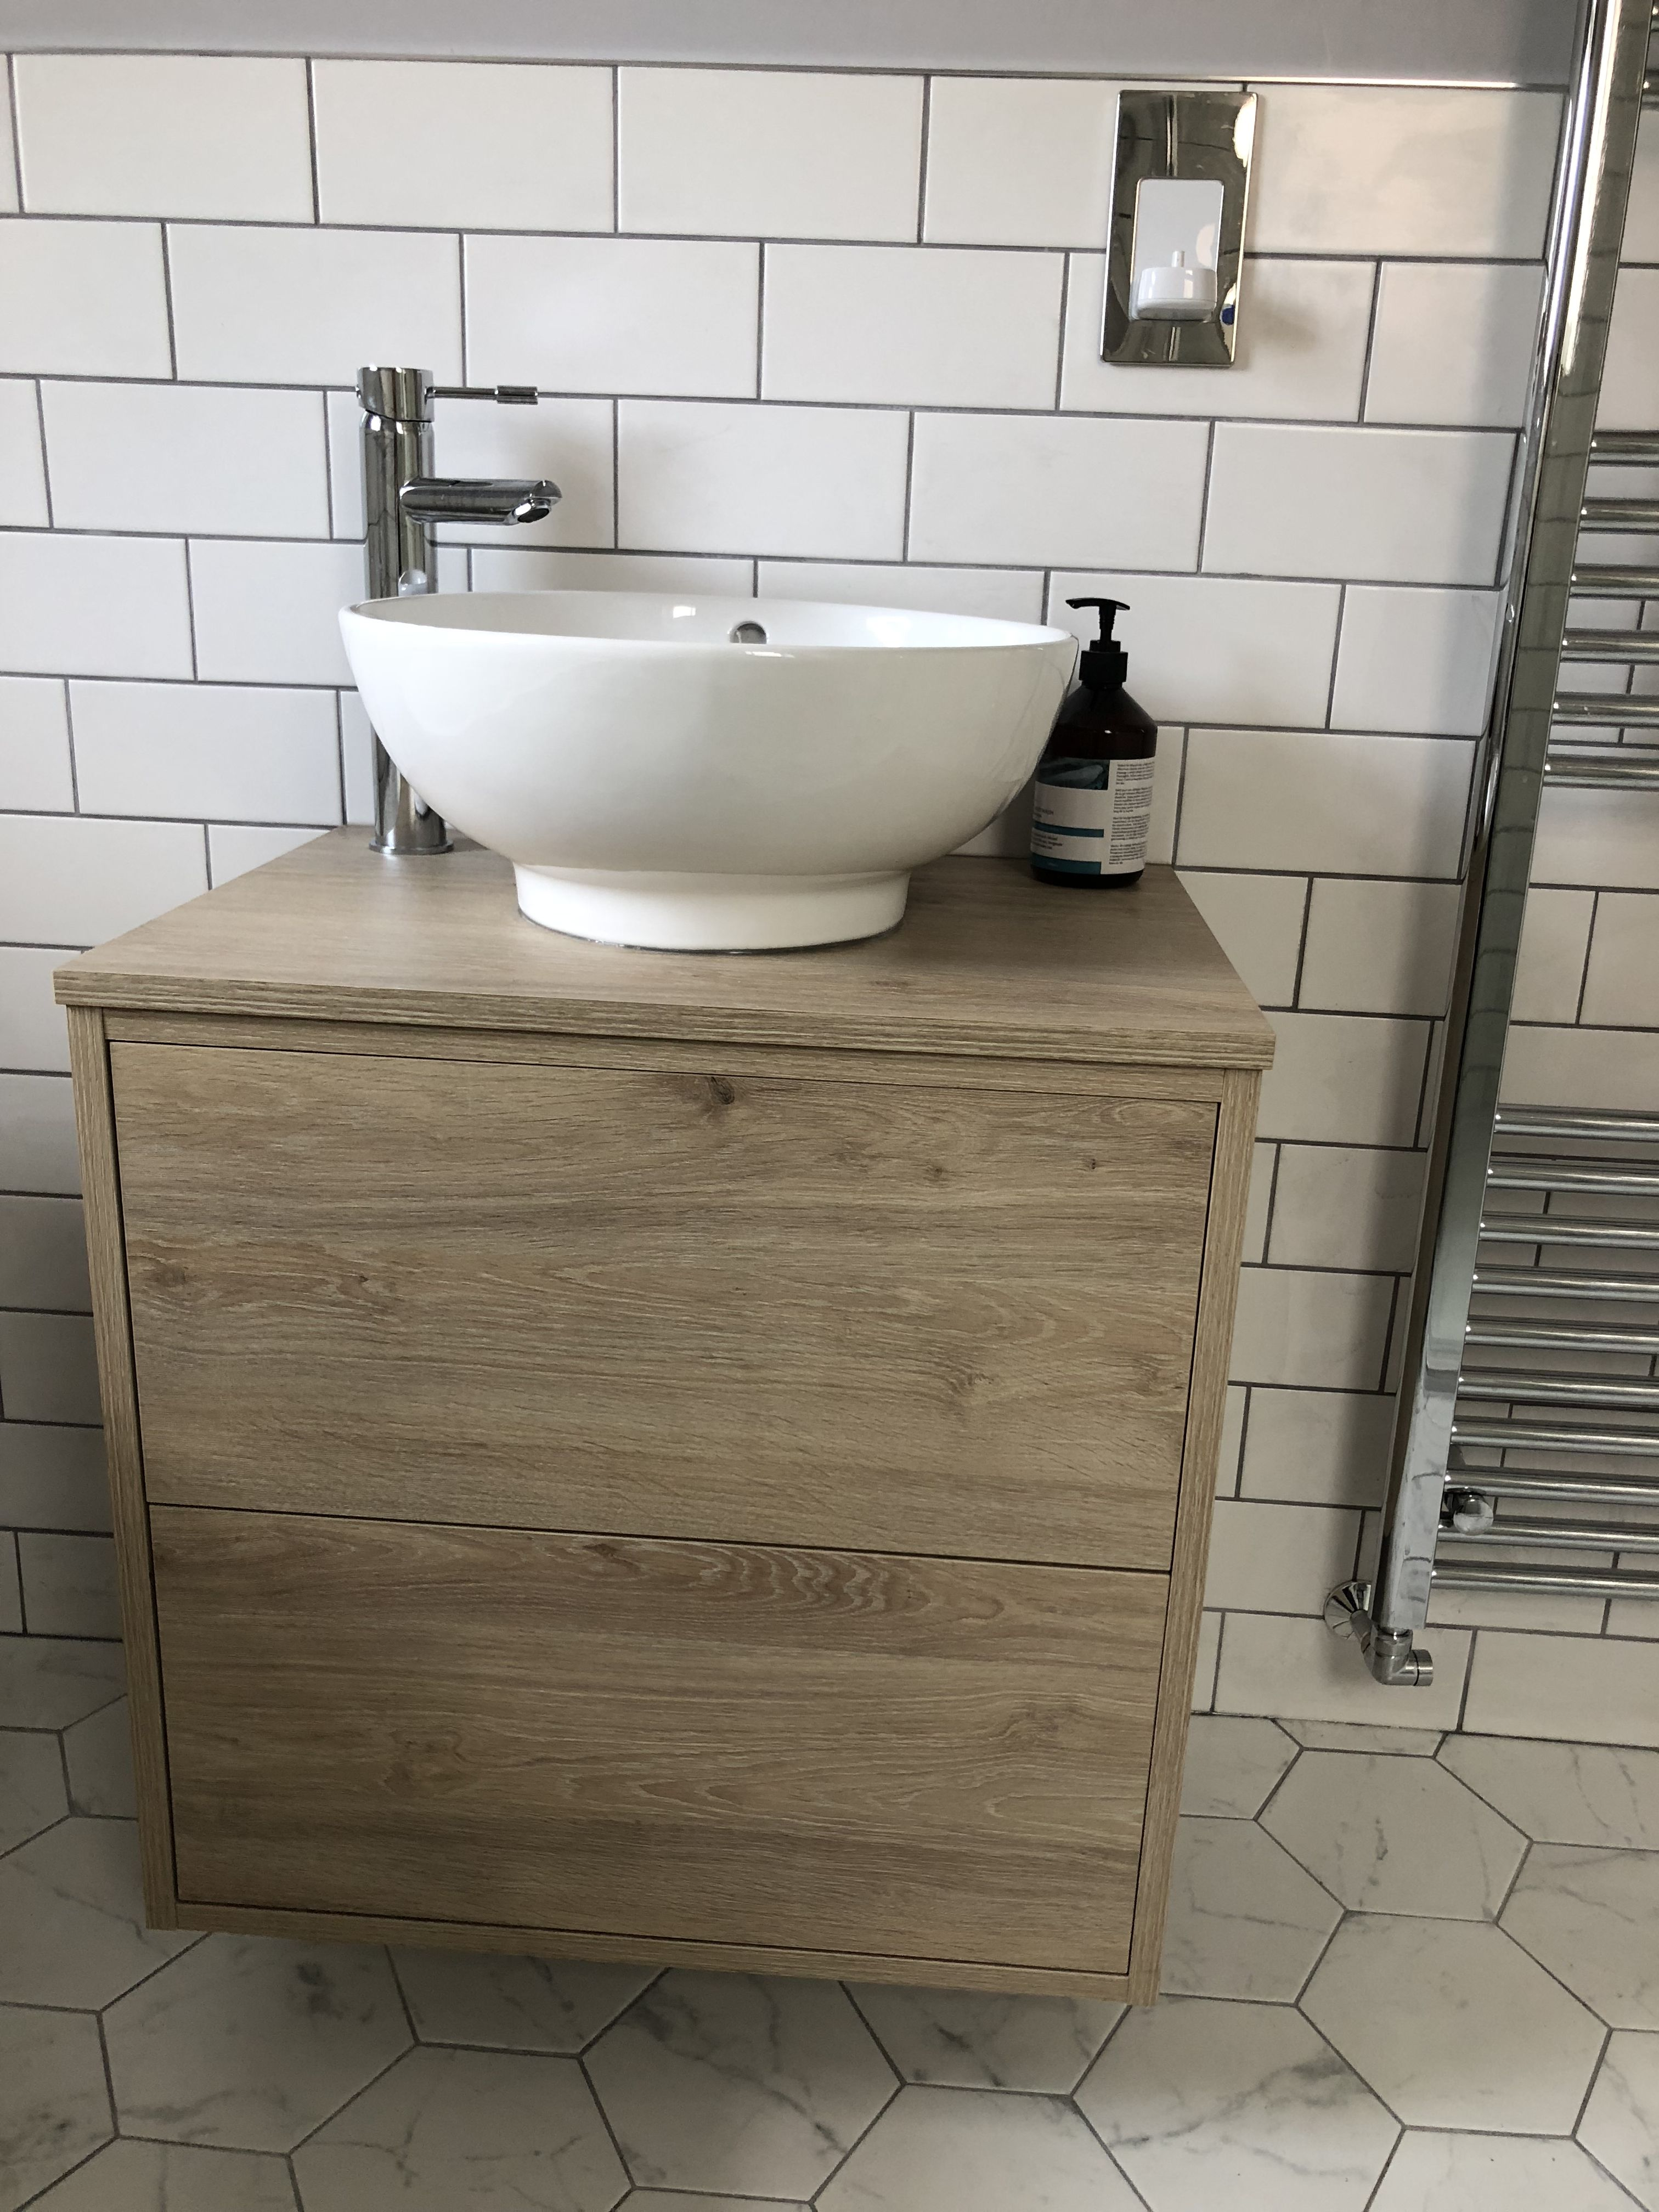 Wall hung vanity unit with standalone basin and tall mixer tap